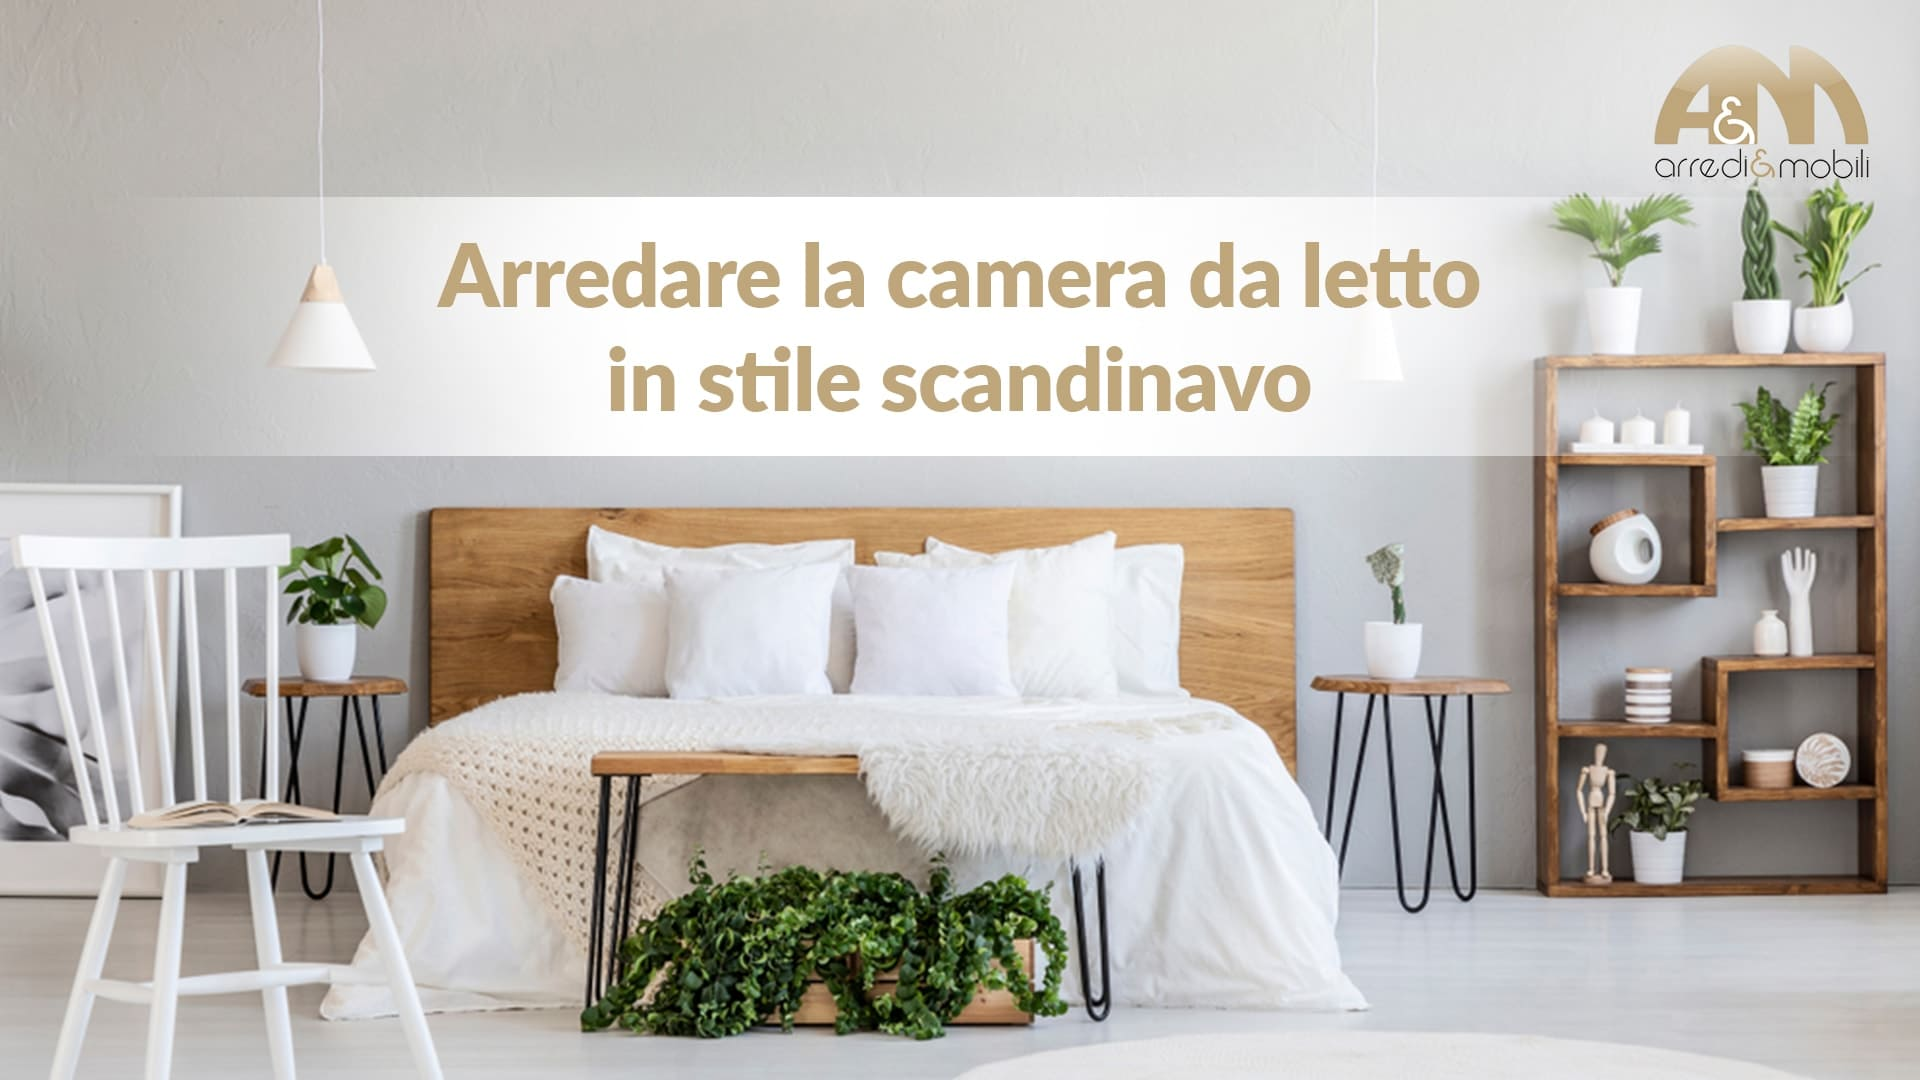 cosa serve per arredare la camera da letto in stile scandinavo